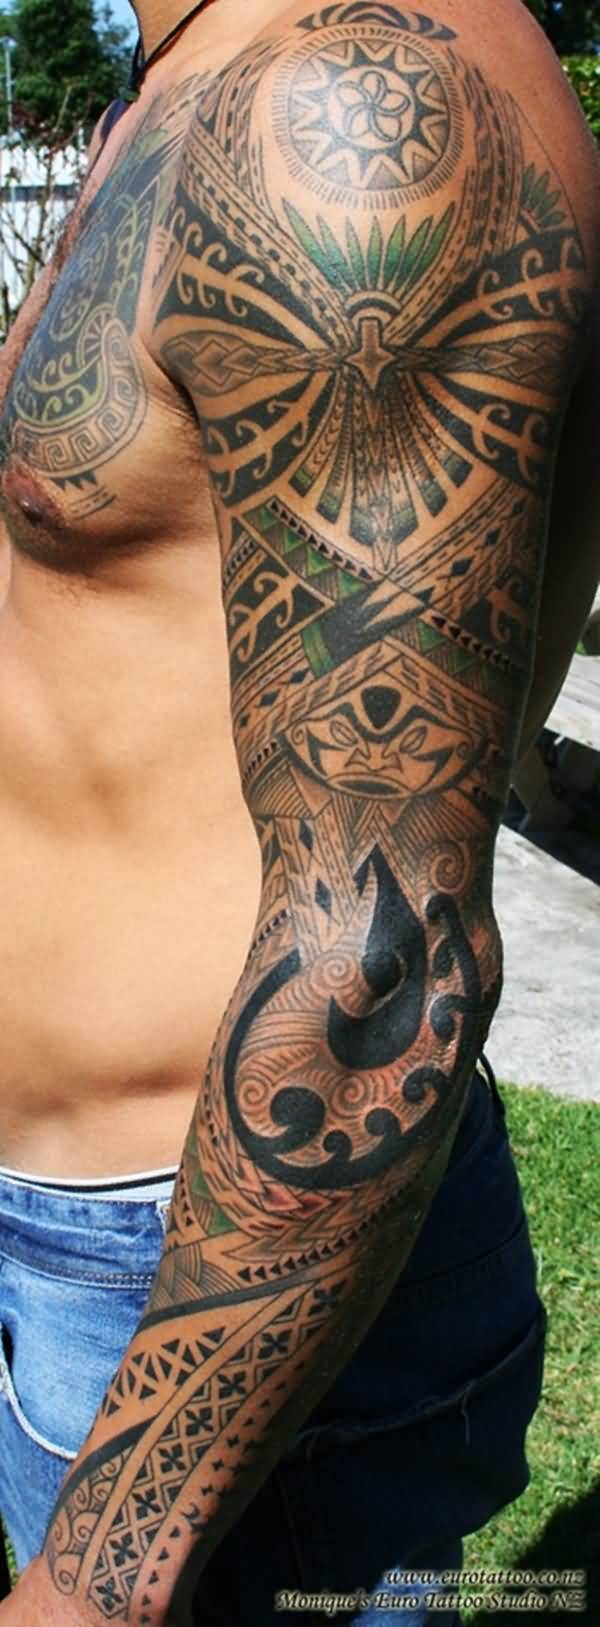 Incredible African Sleeve Tattoo Of Maori